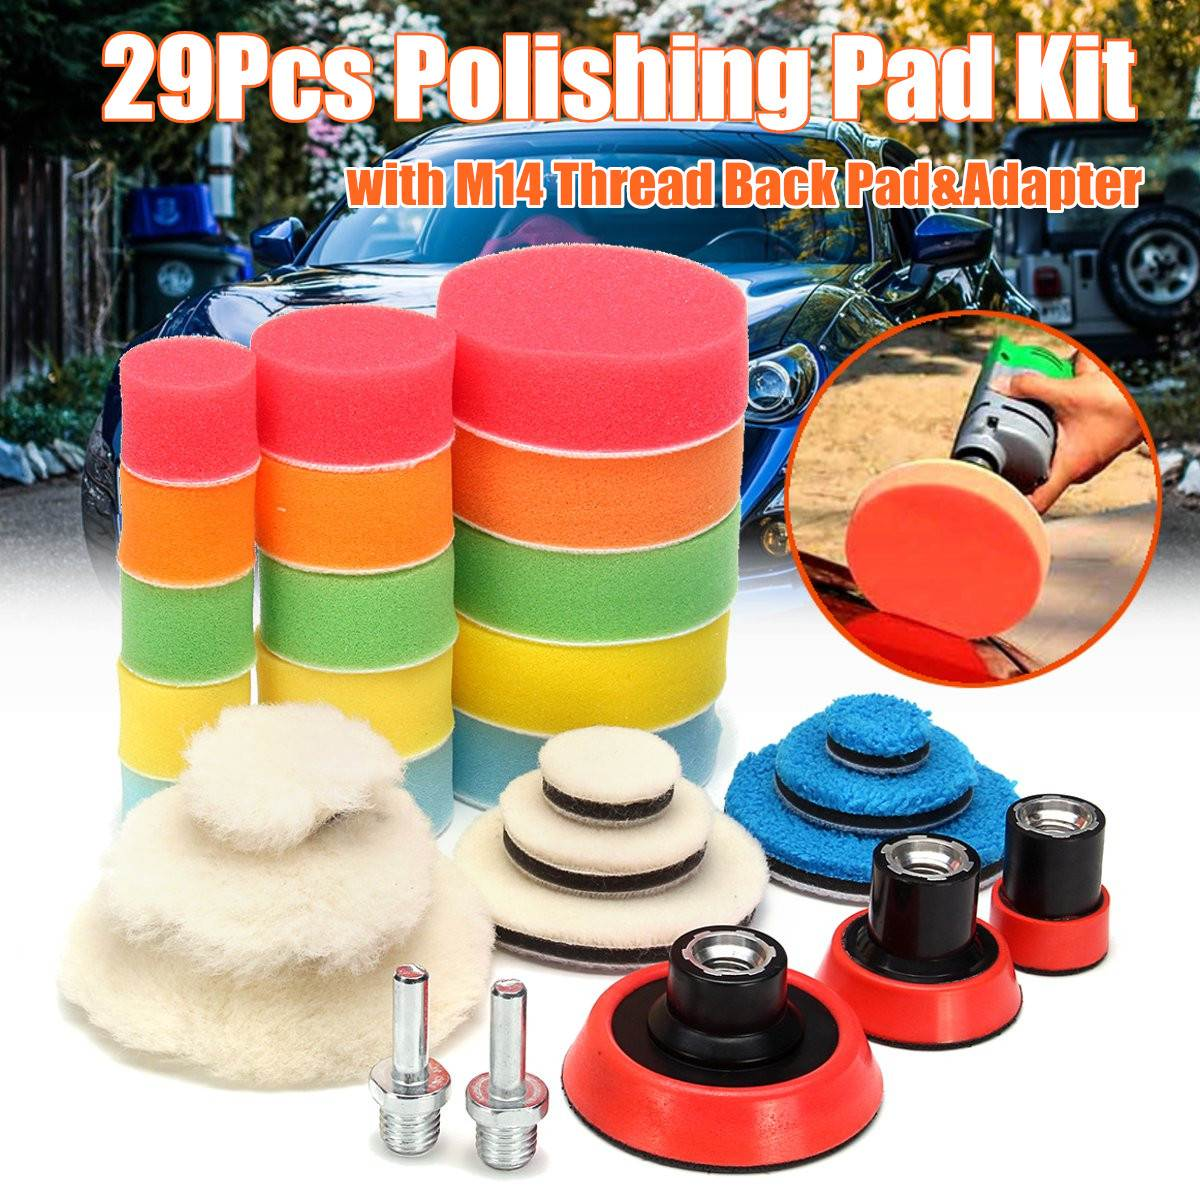 29Pcs/Set 1-3 Inch Buffing Buffer Pad Polishing Pad Kit For Car Polisher Pads M10 Thread Abrasive Tools